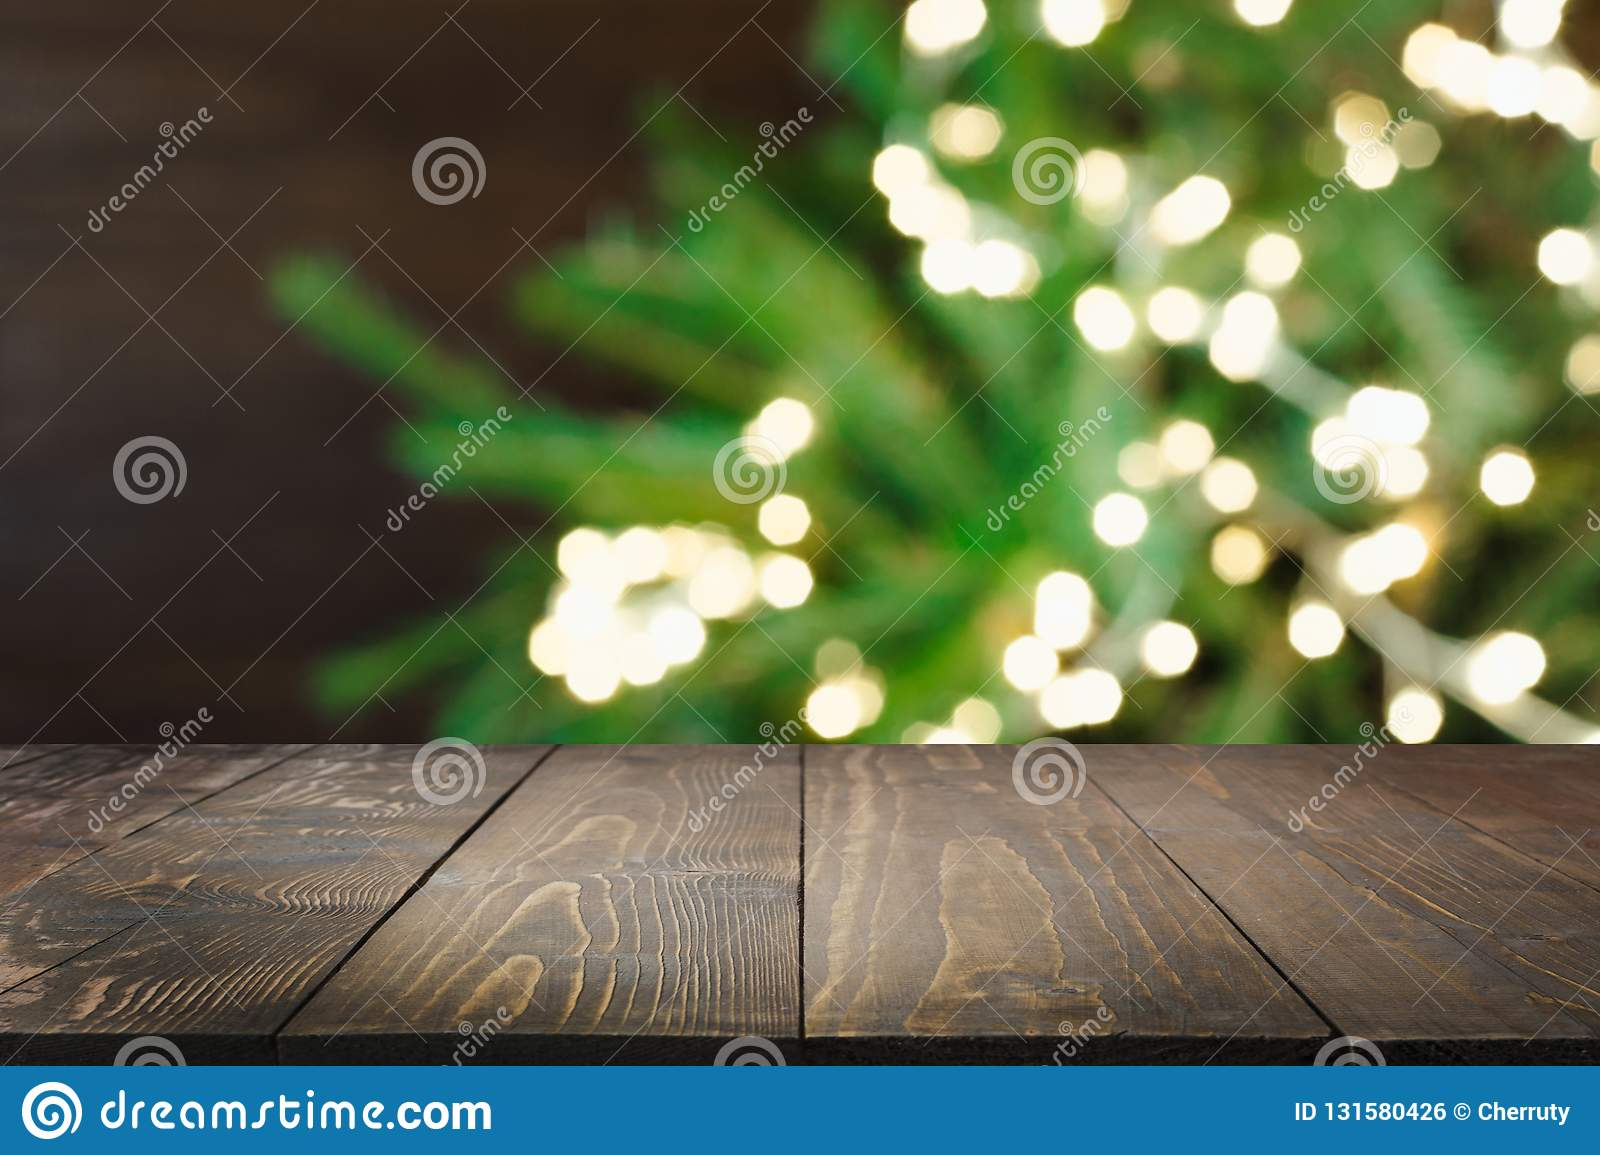 Wooden Dark Tabletop And Blurred Christmas Tree Bokeh Xmas